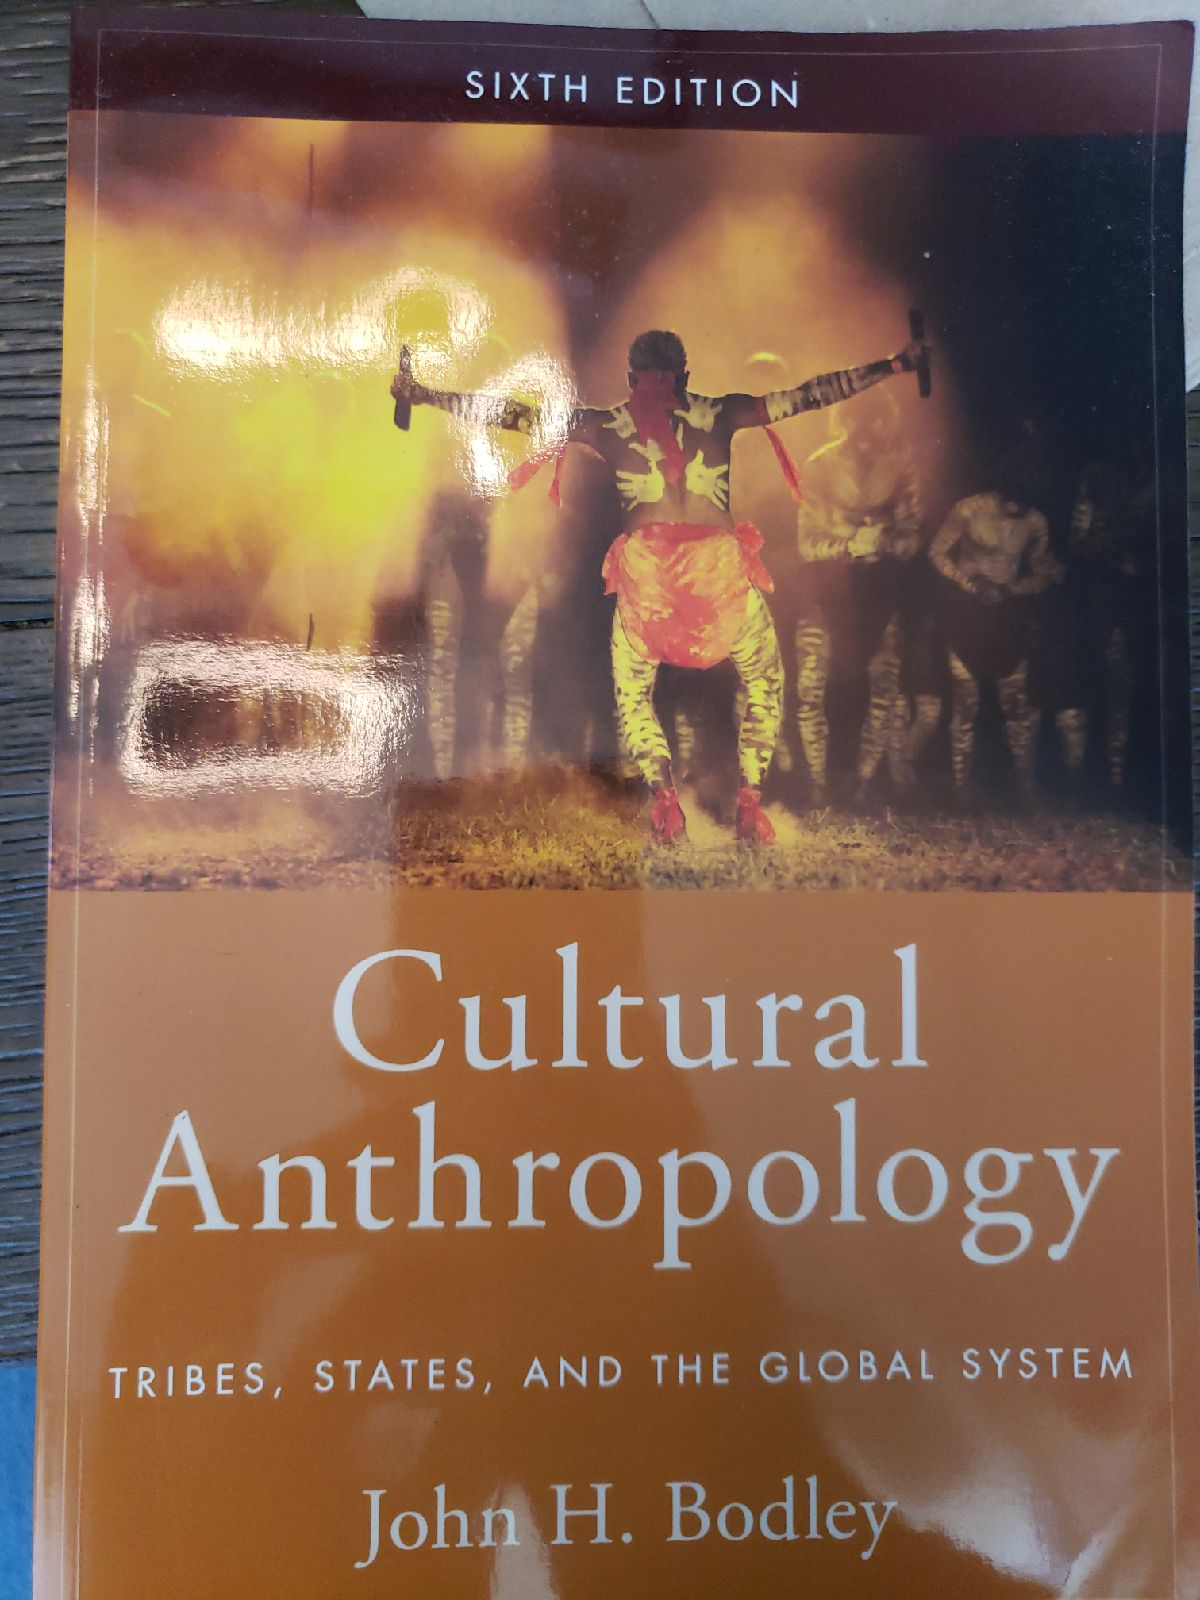 Cultural Anthropology 6th Edition